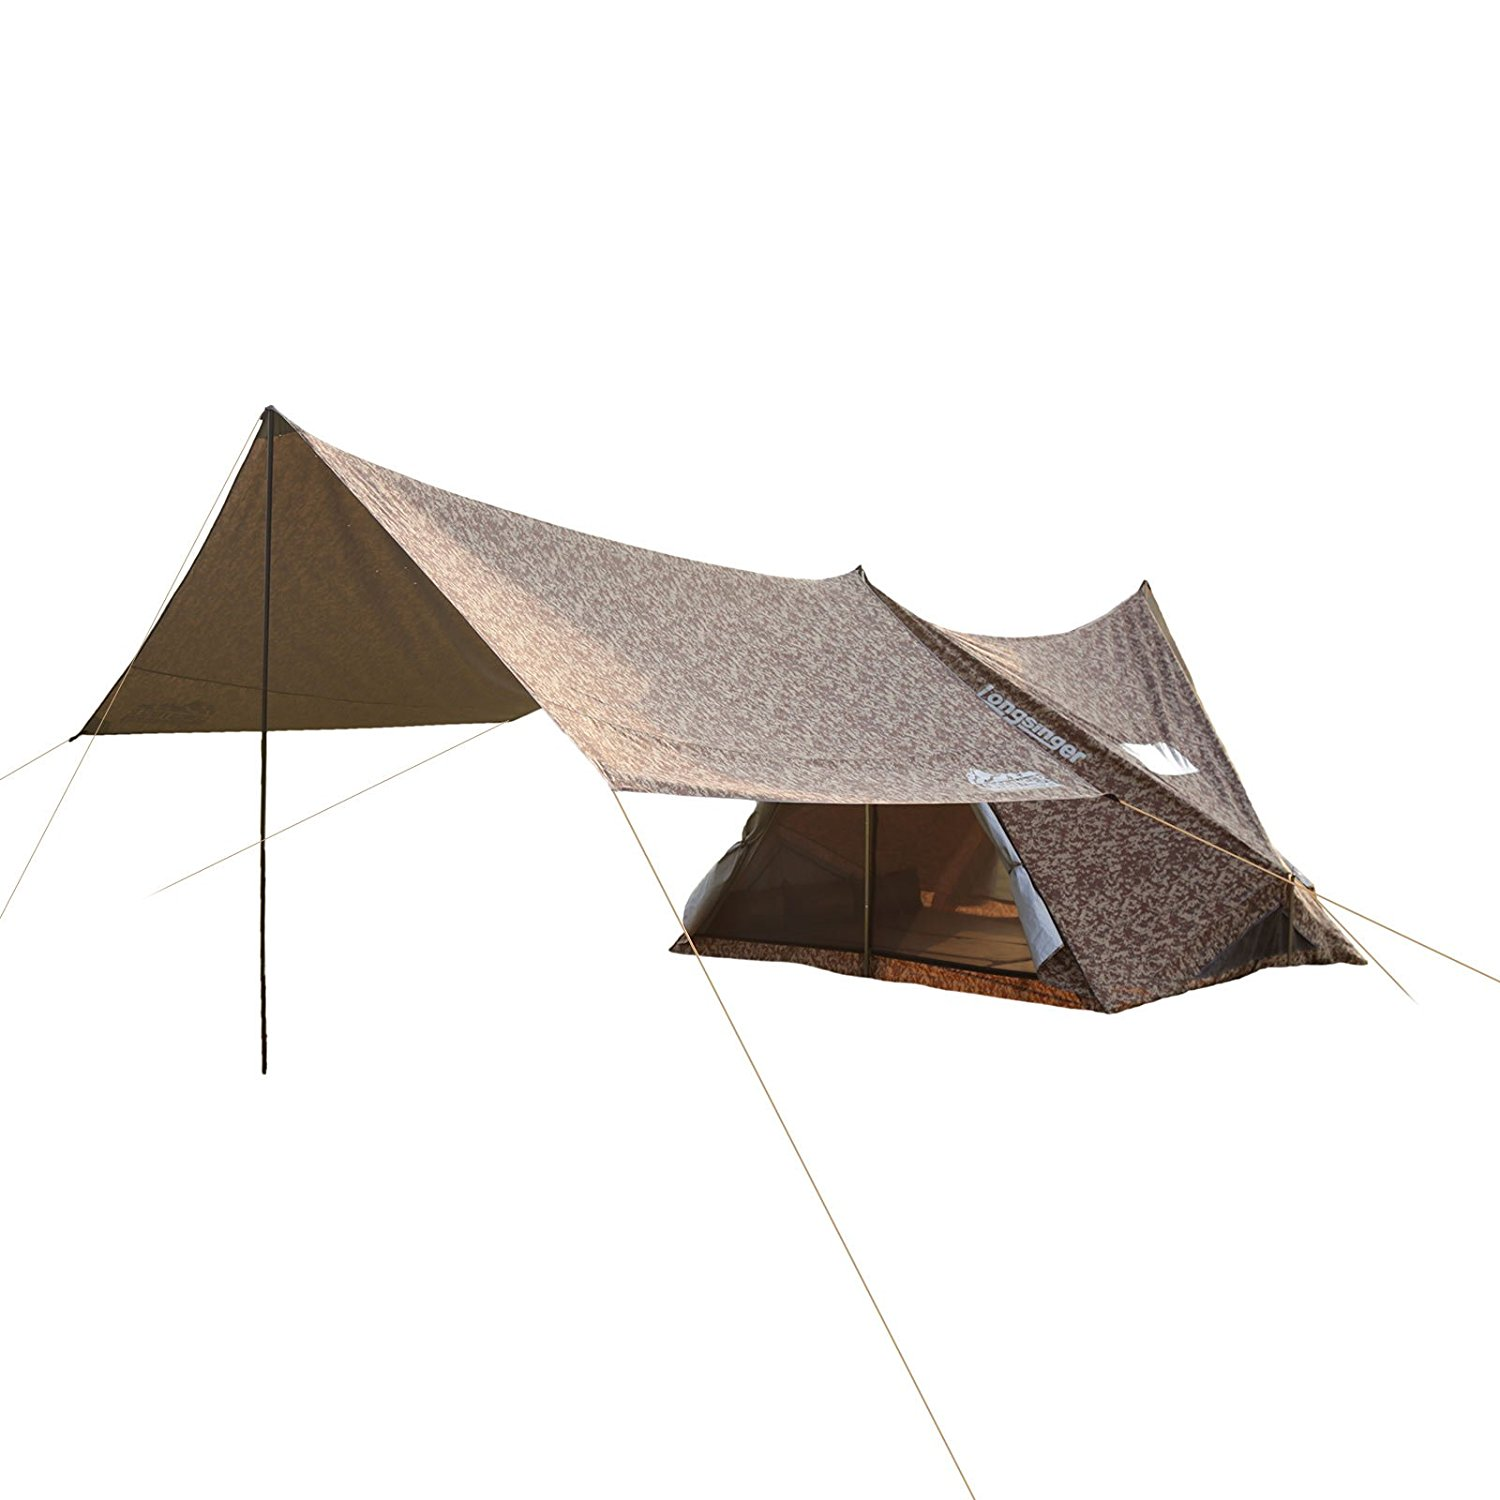 110.2x94.5x76.8in 5 person camping tent family tent with 137.8x157.5x78.7in Large rain fly tent tarp